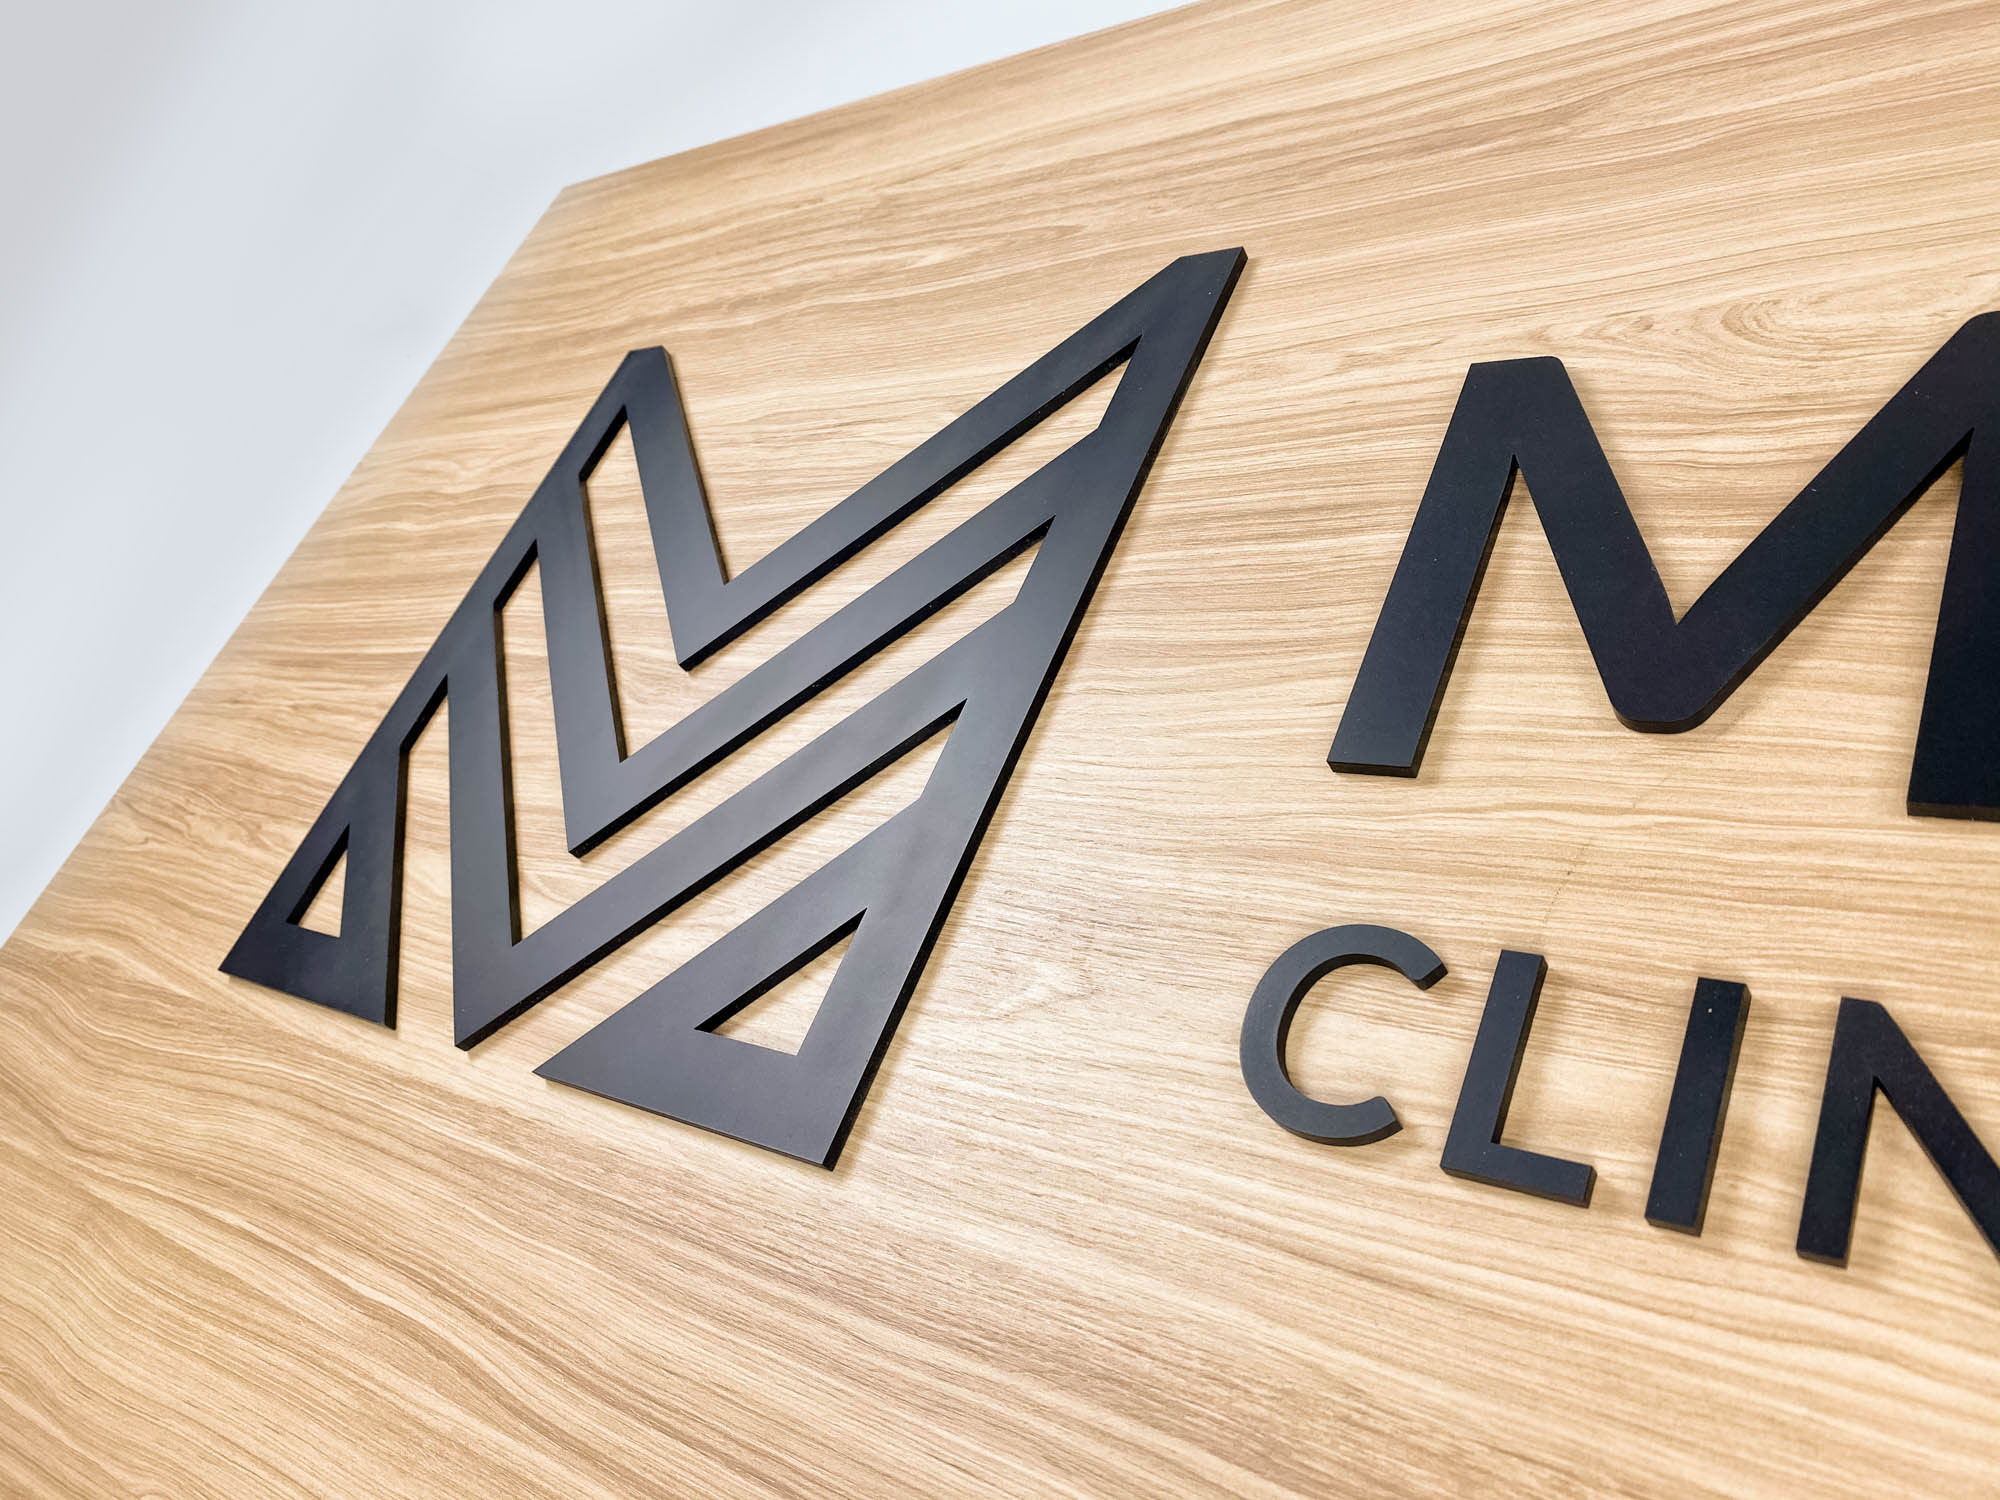 Black logo on light wood laminate panel for the Midtown Clinic of Chiropractic, a full-service chiropractic treatment center serving the Lake Worth, FL area.